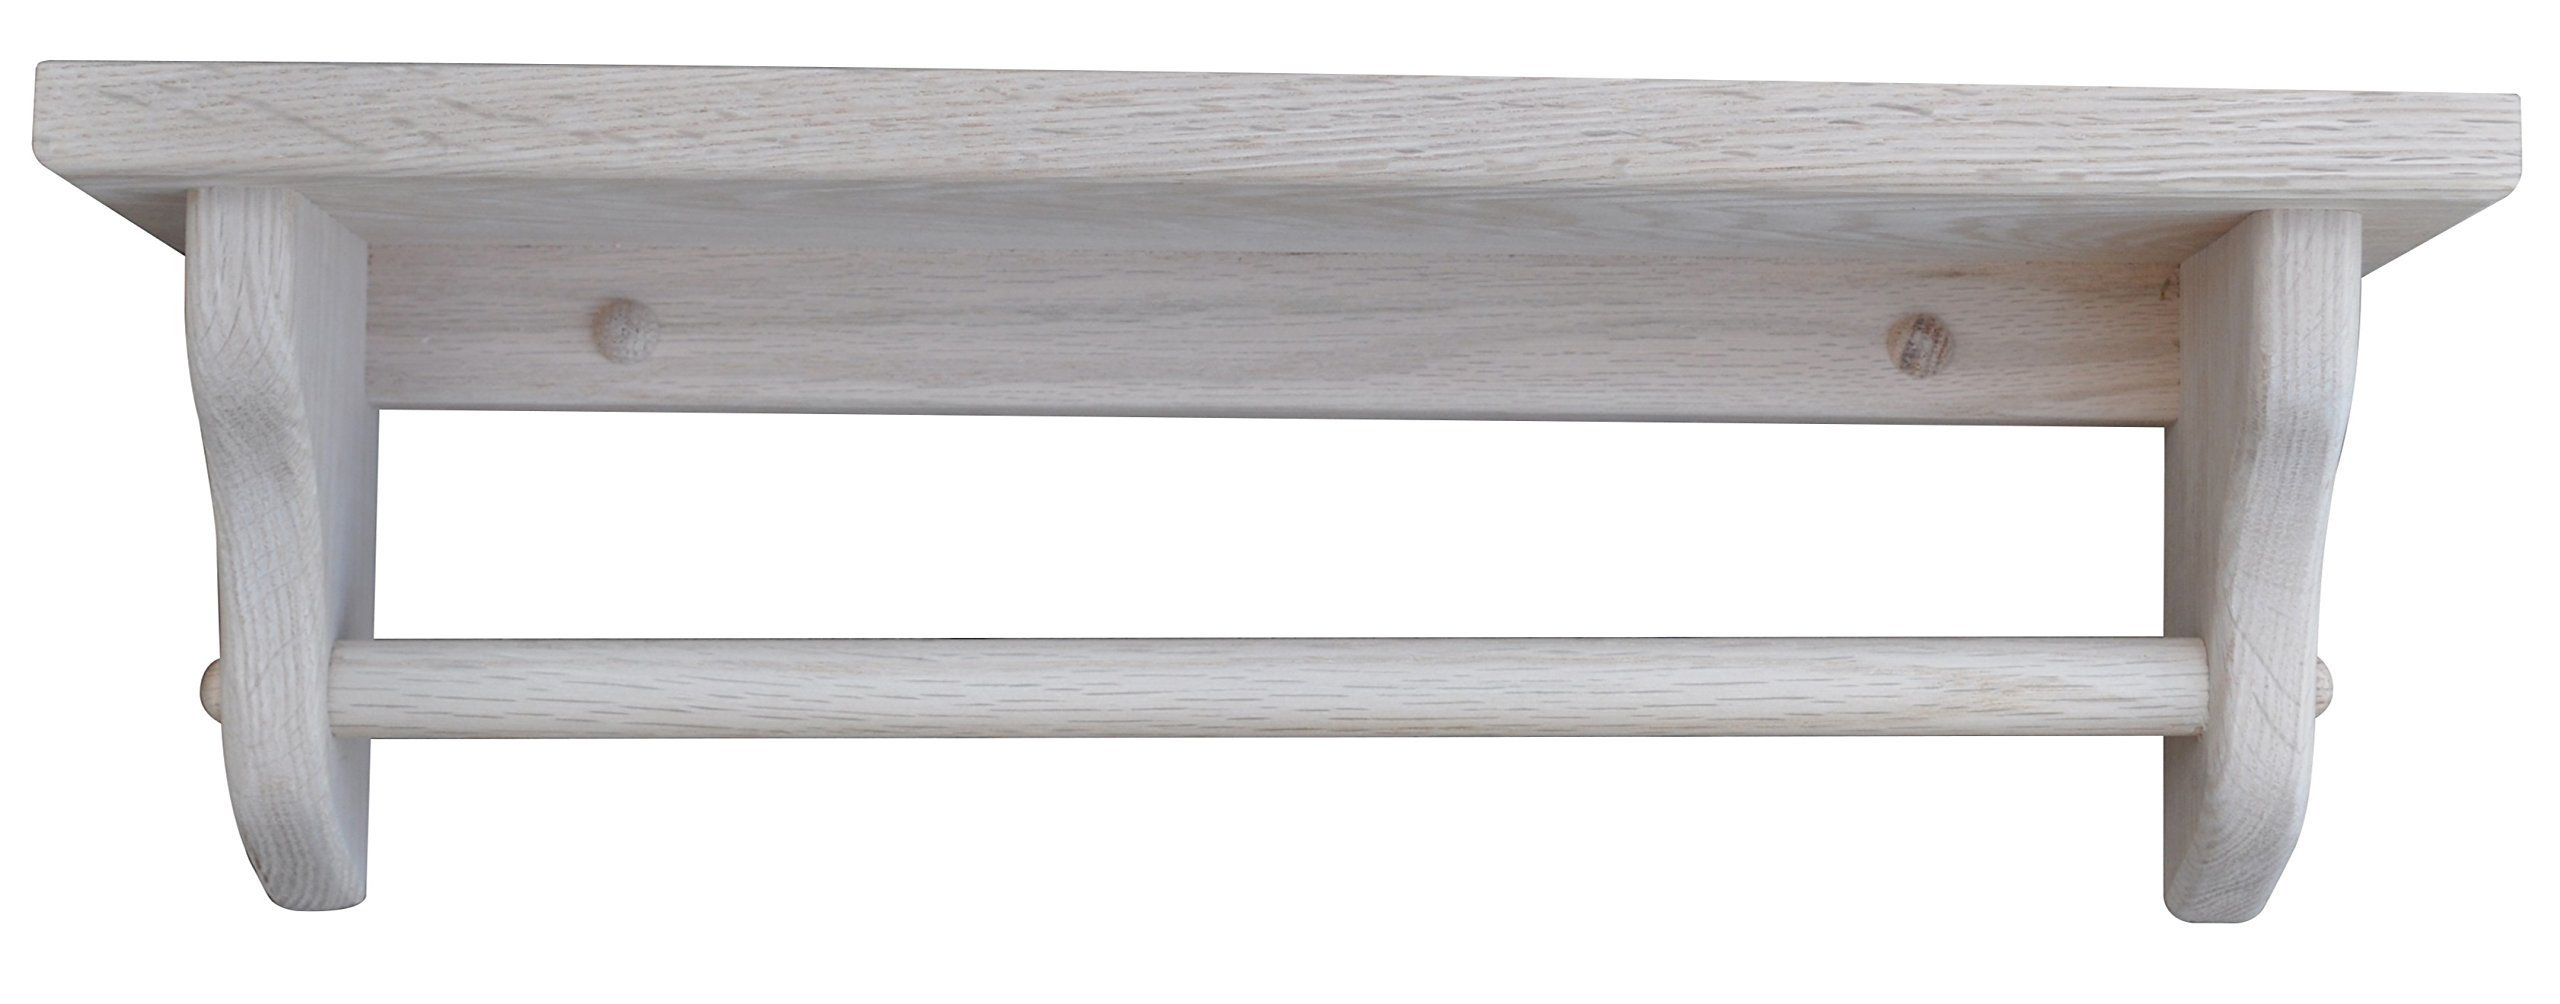 Towel Bar Shelf 24'' Solid Oak Wood - Unfinished